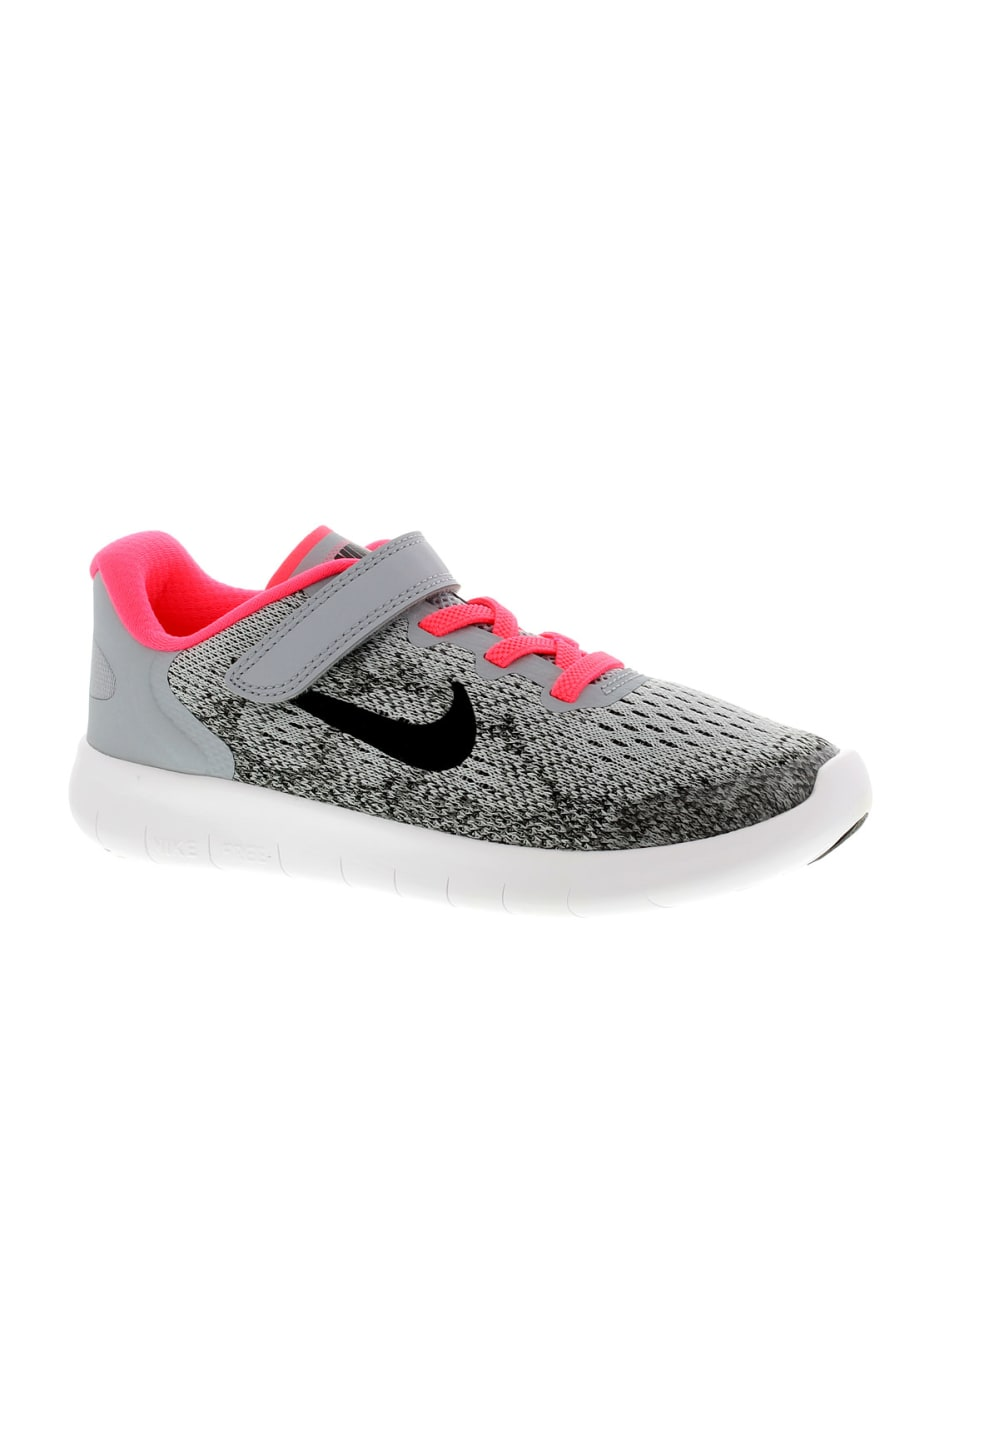 new product 12e69 1958e Nike Girls Free RN 2 PSV - Running shoes - Grey